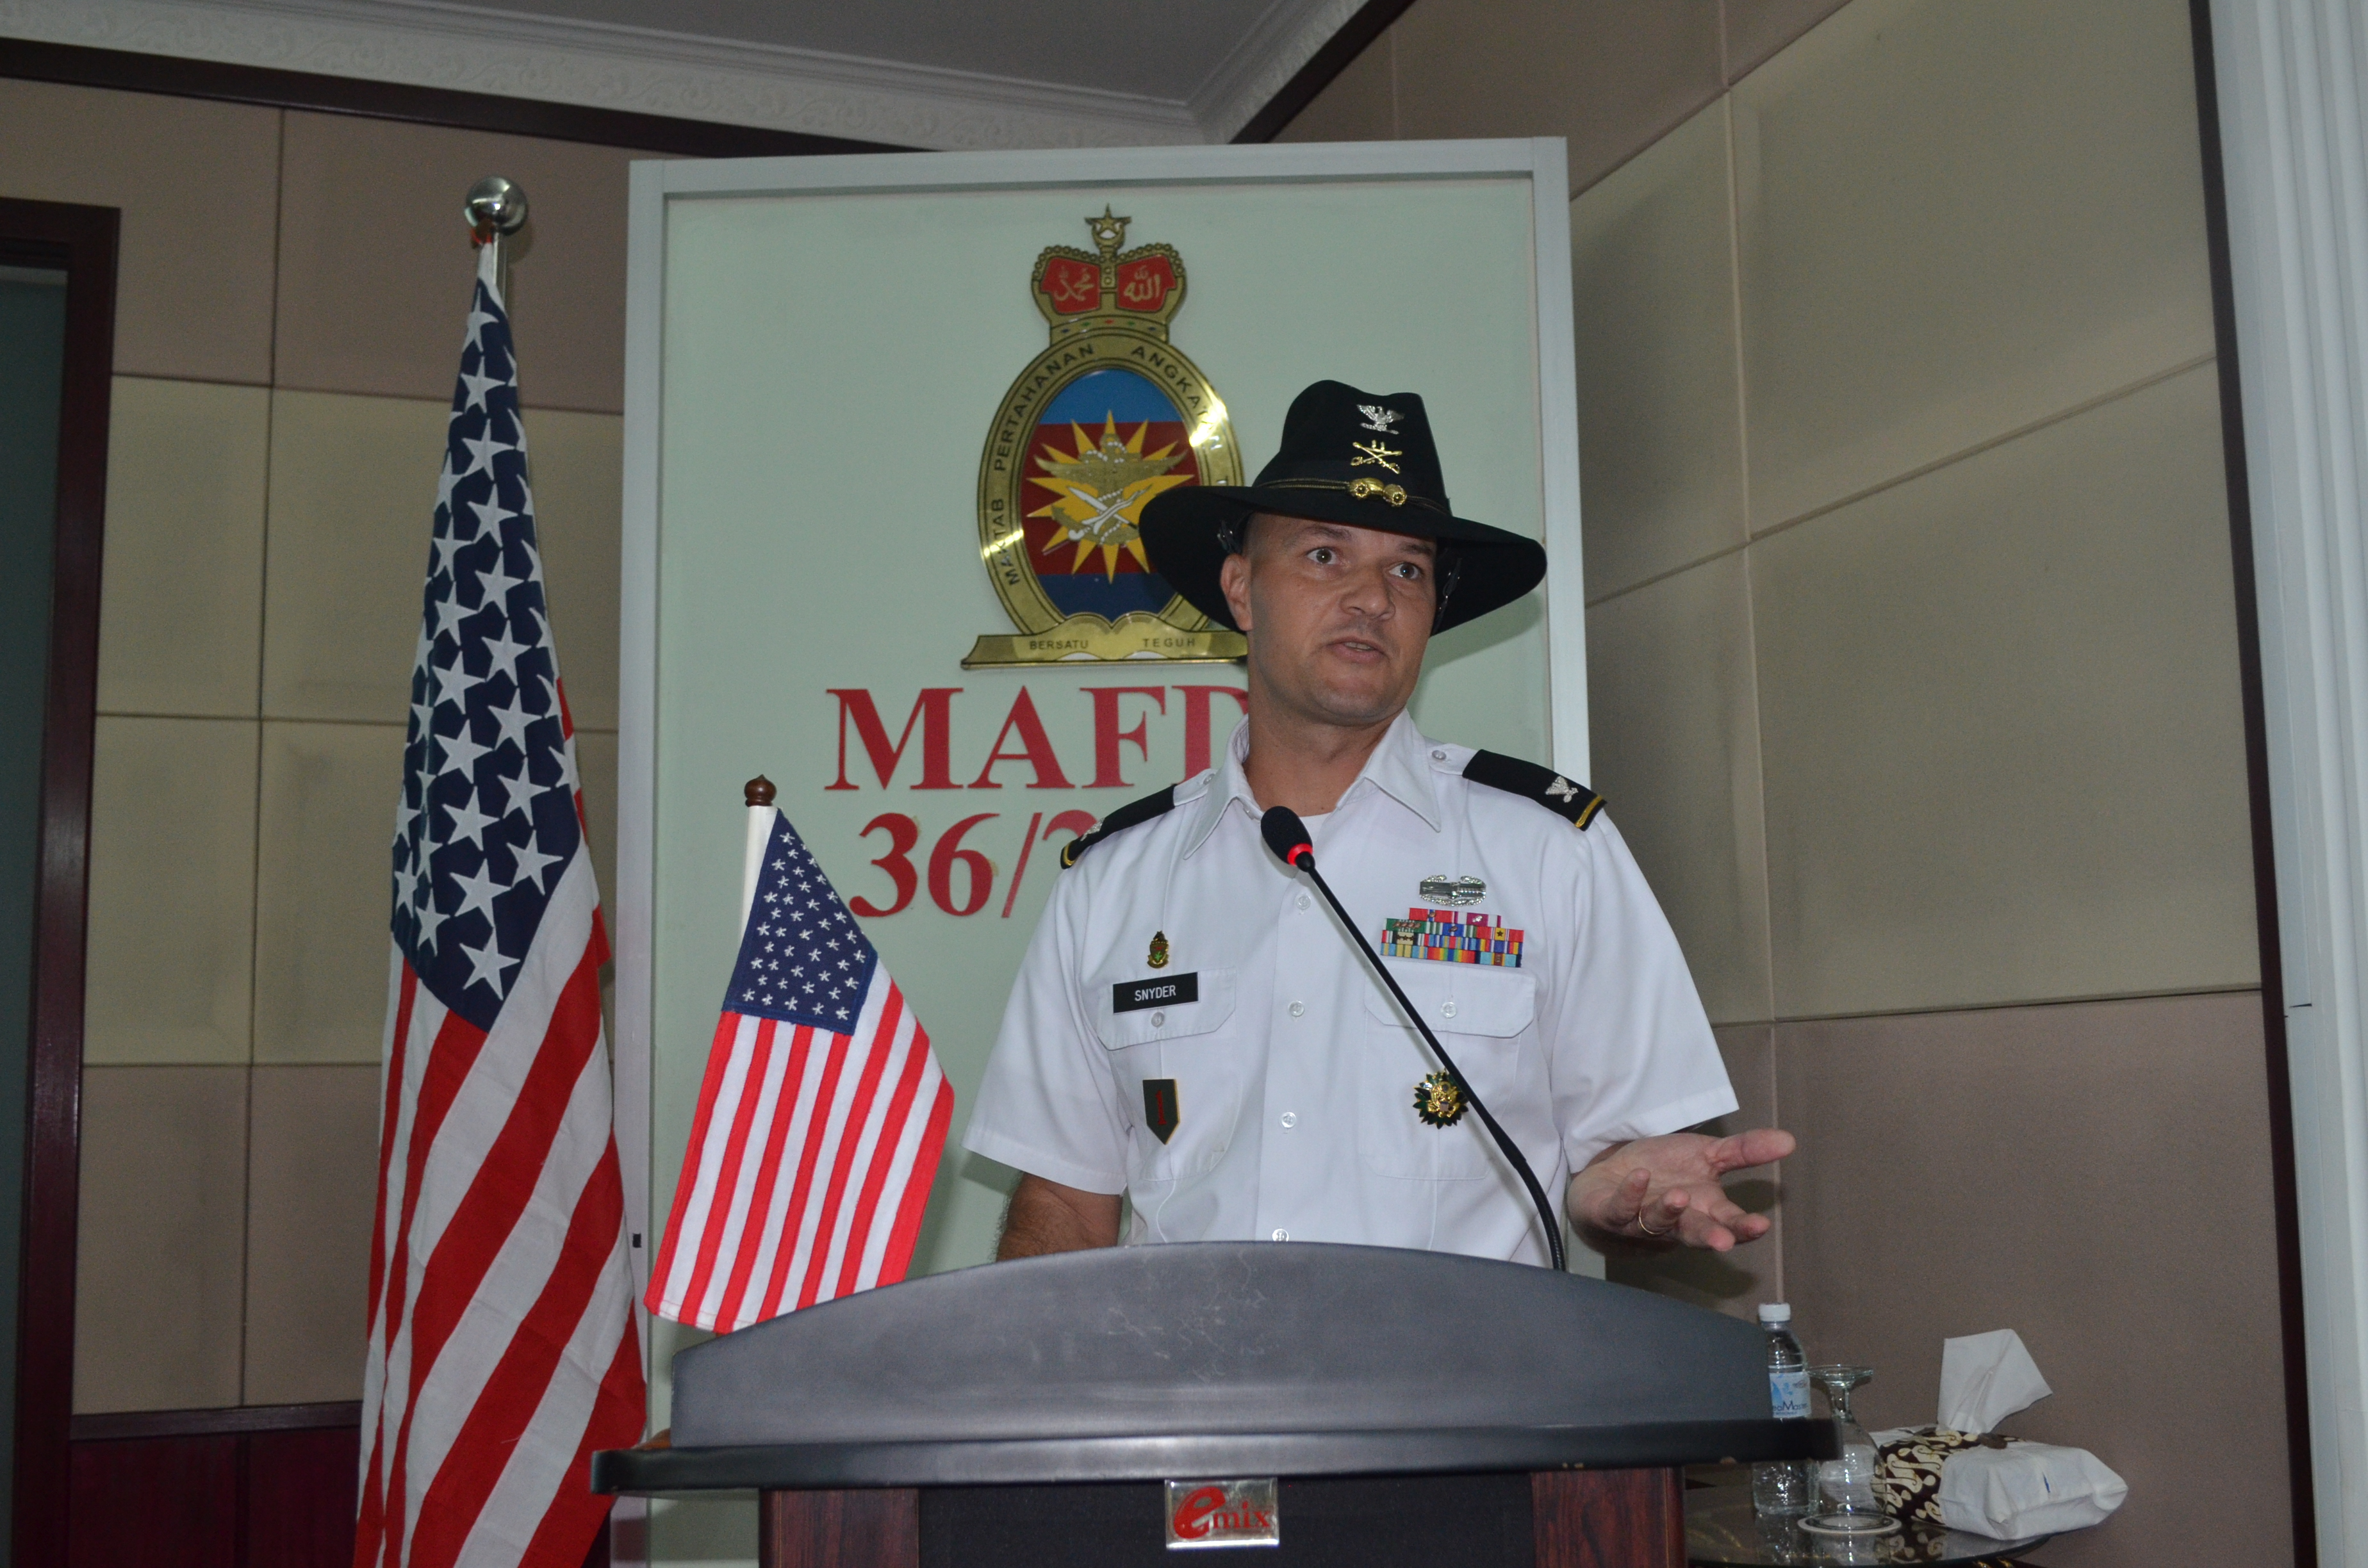 Col Frederick delivered a brief on United States of America